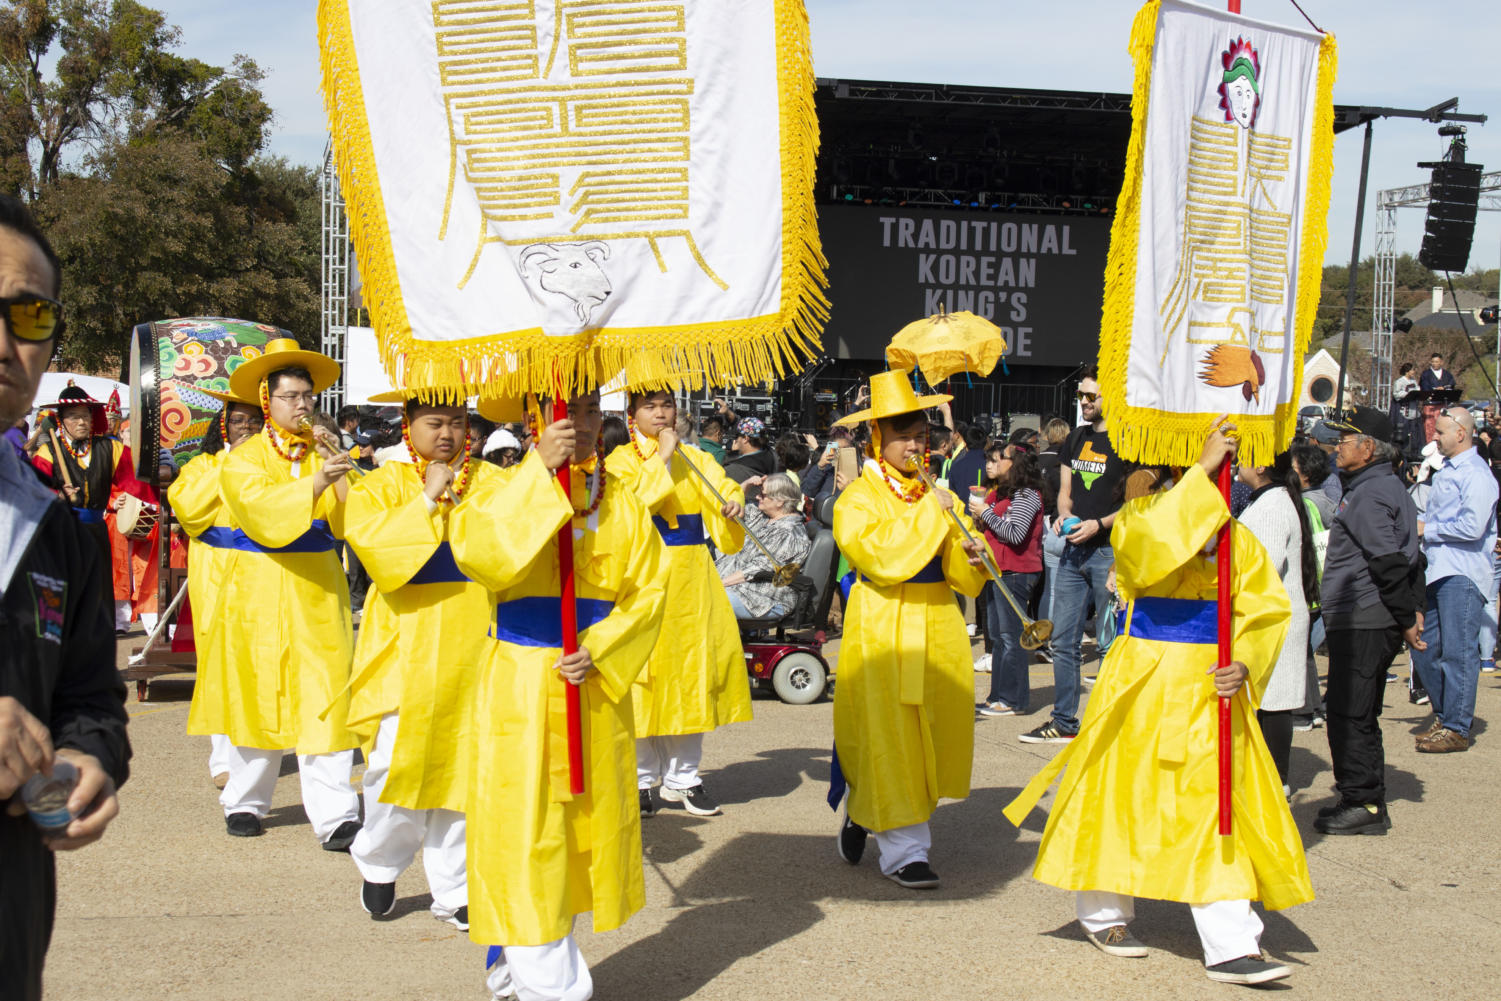 Volunteers at the Korean Festival perform a Traditional King's Korean Parade with drums, horns and customary closing on Saturday at Carrollton Asian Town Center. The festival celebrates Korean culture with music, food, ceremonies and various vendors.